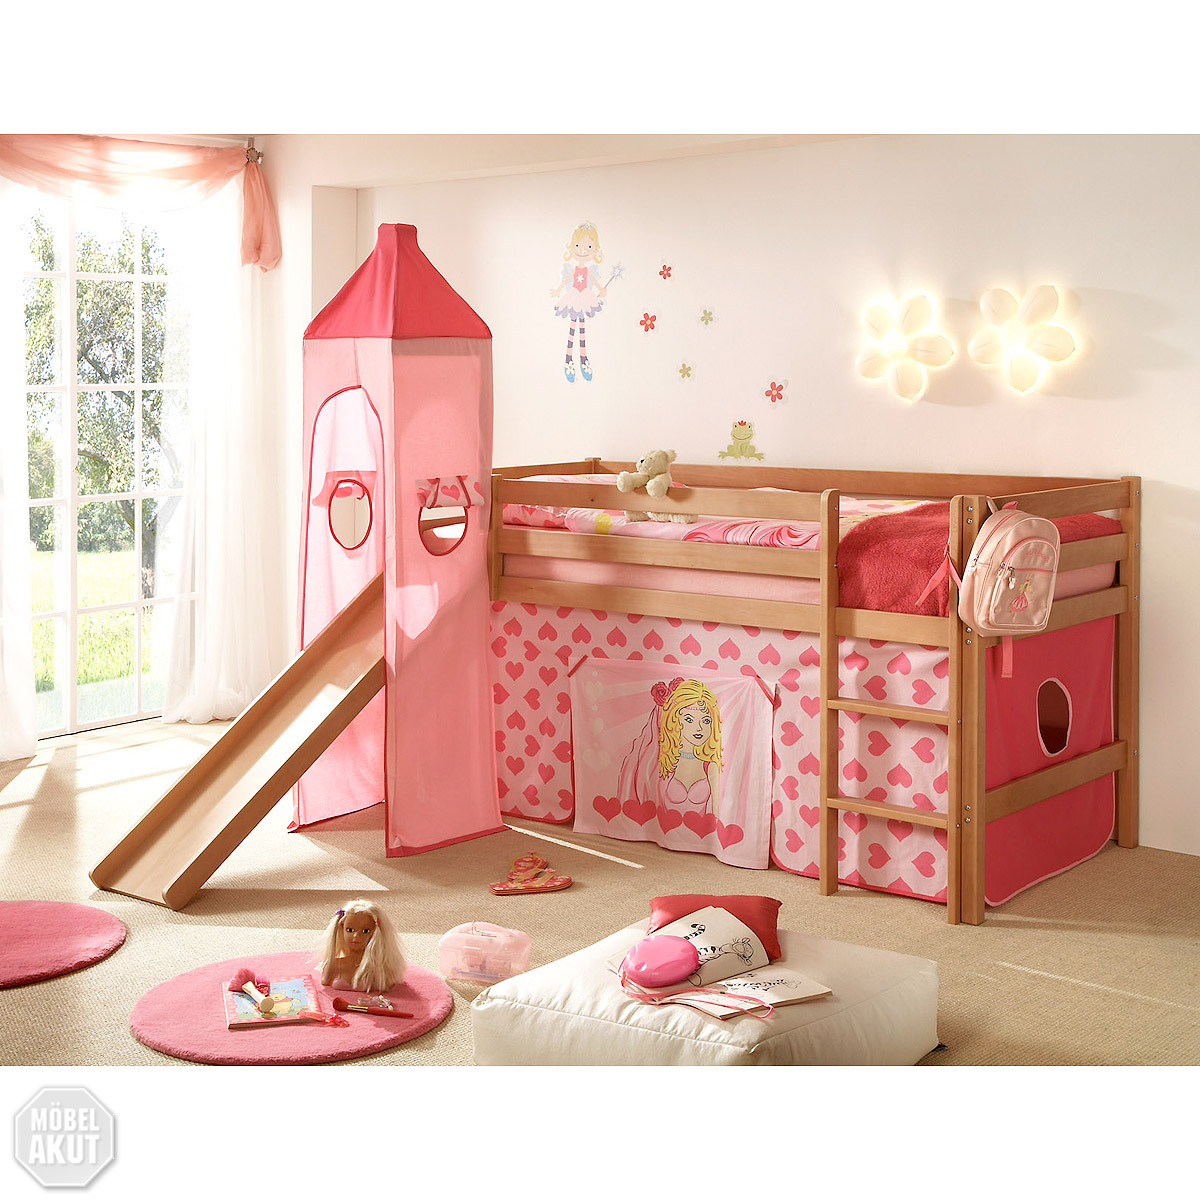 kinderhochbett mit rutsche selber bauen. Black Bedroom Furniture Sets. Home Design Ideas